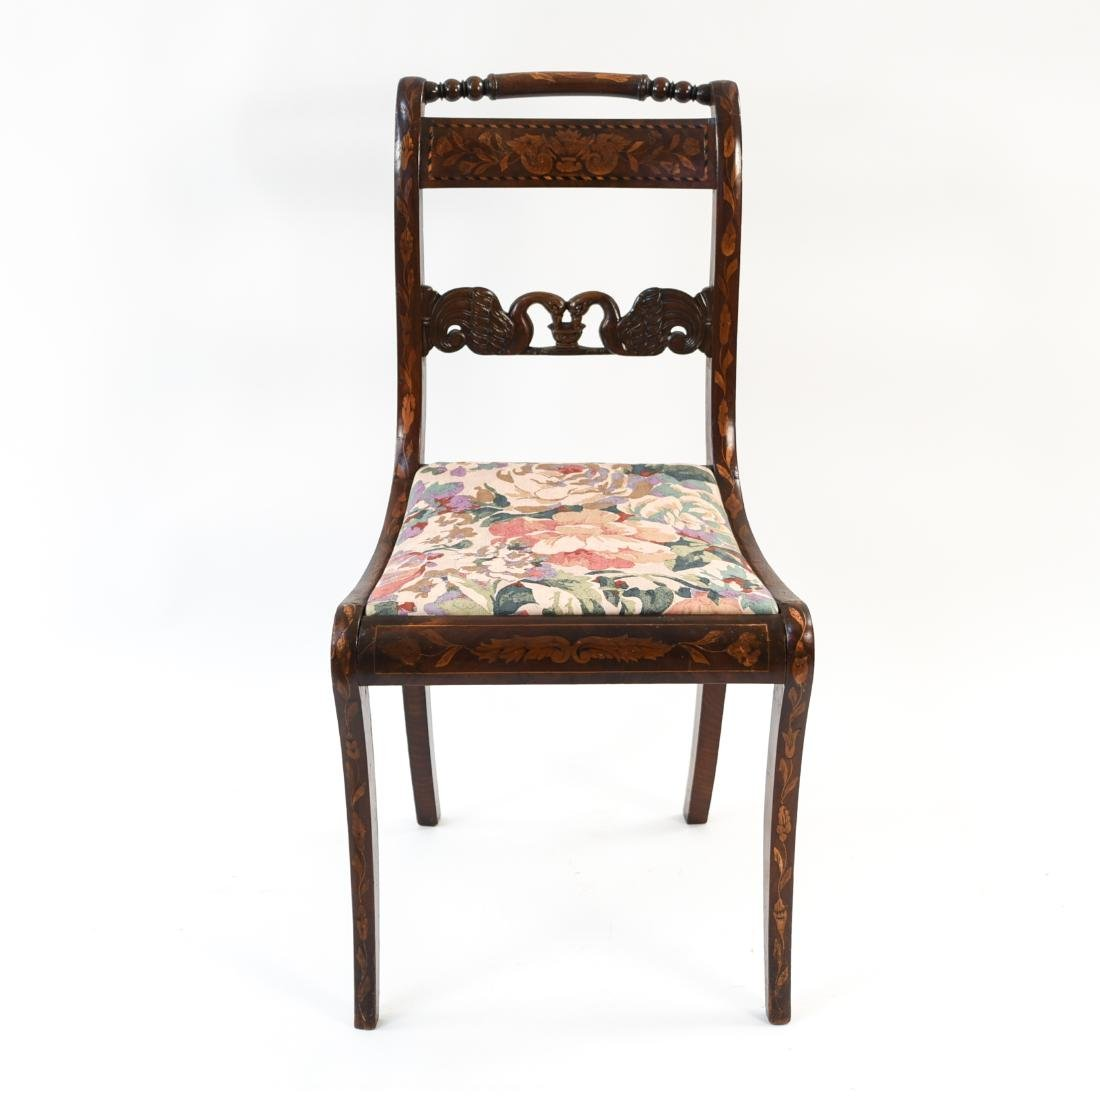 ANTIQUE INLAID SIDE CHAIR